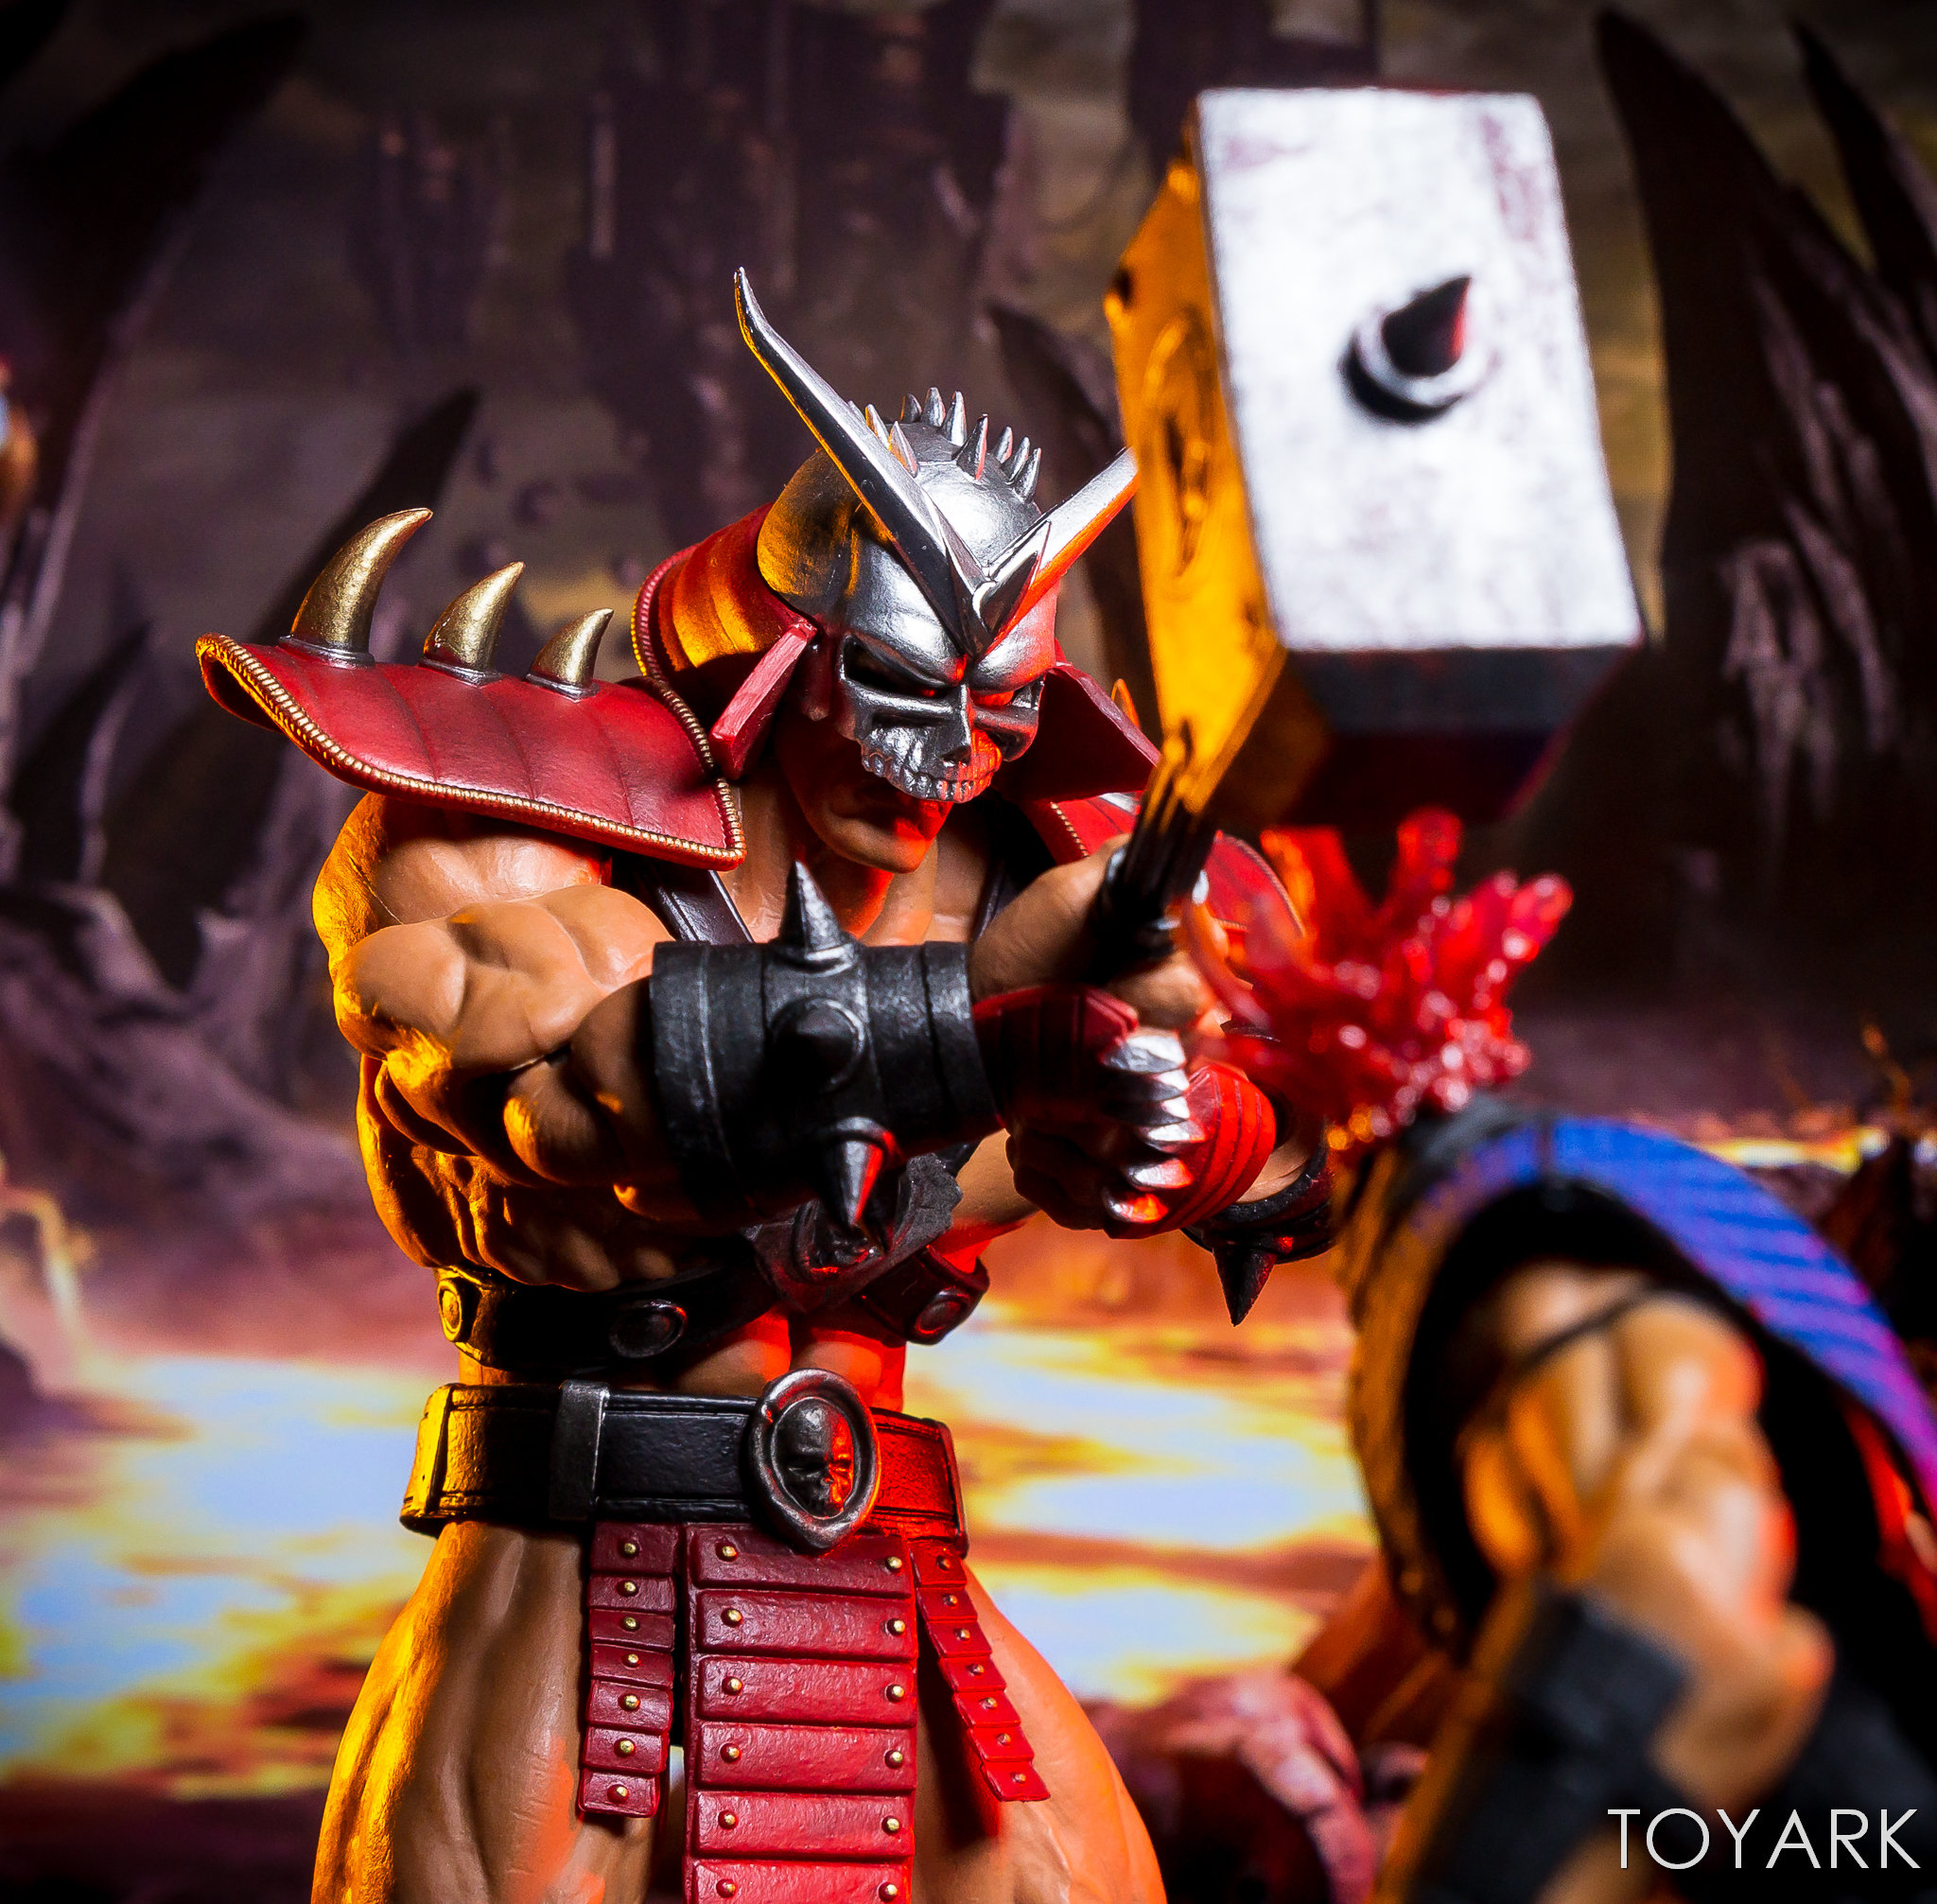 https://news.toyark.com/wp-content/uploads/sites/4/2018/06/Storm-Mortal-Kombat-Shao-Kahn-Figure-038.jpg